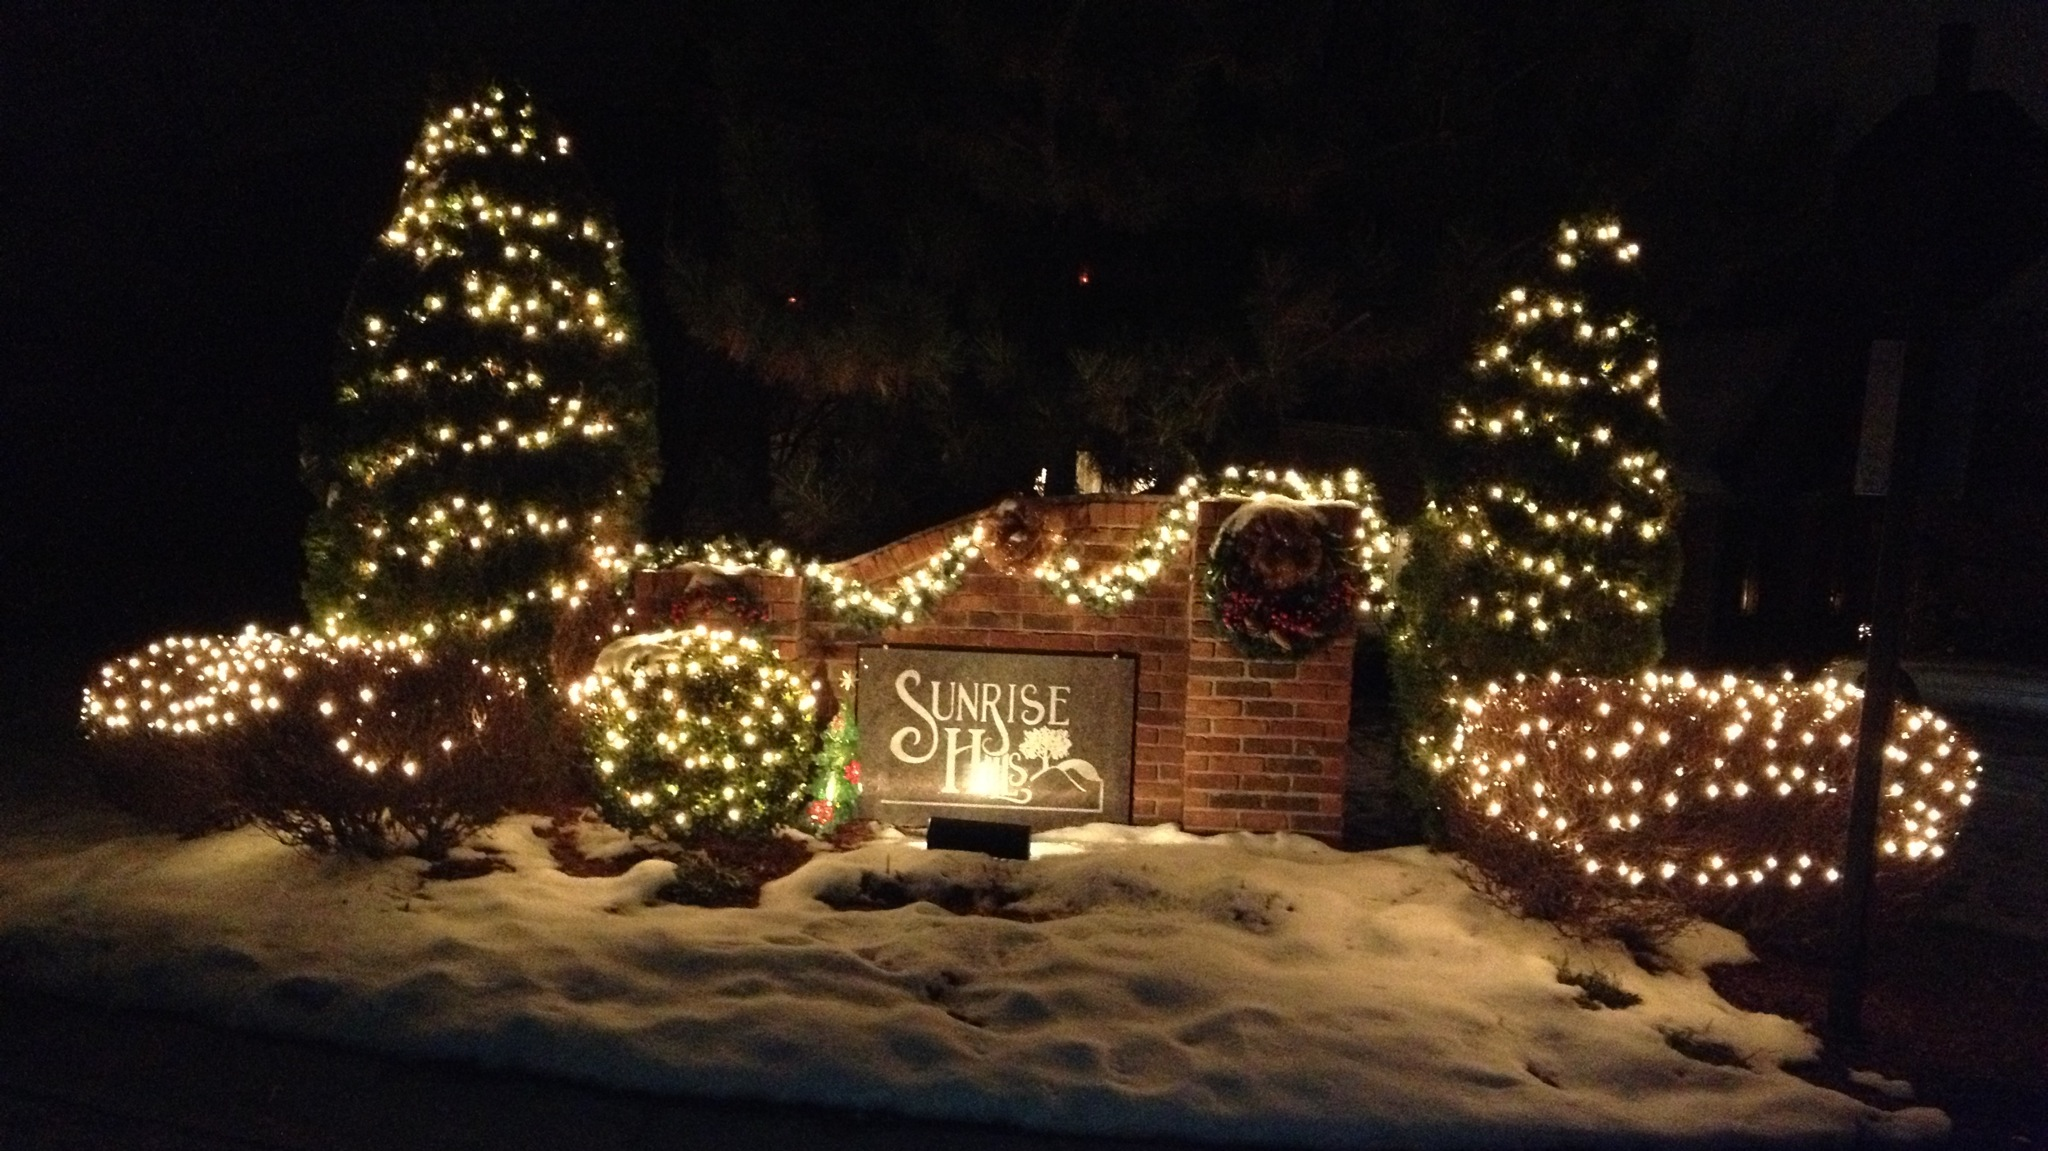 Christmas Decorations For Neighborhood Entrances : Neighborhood images sunrise hills hoa